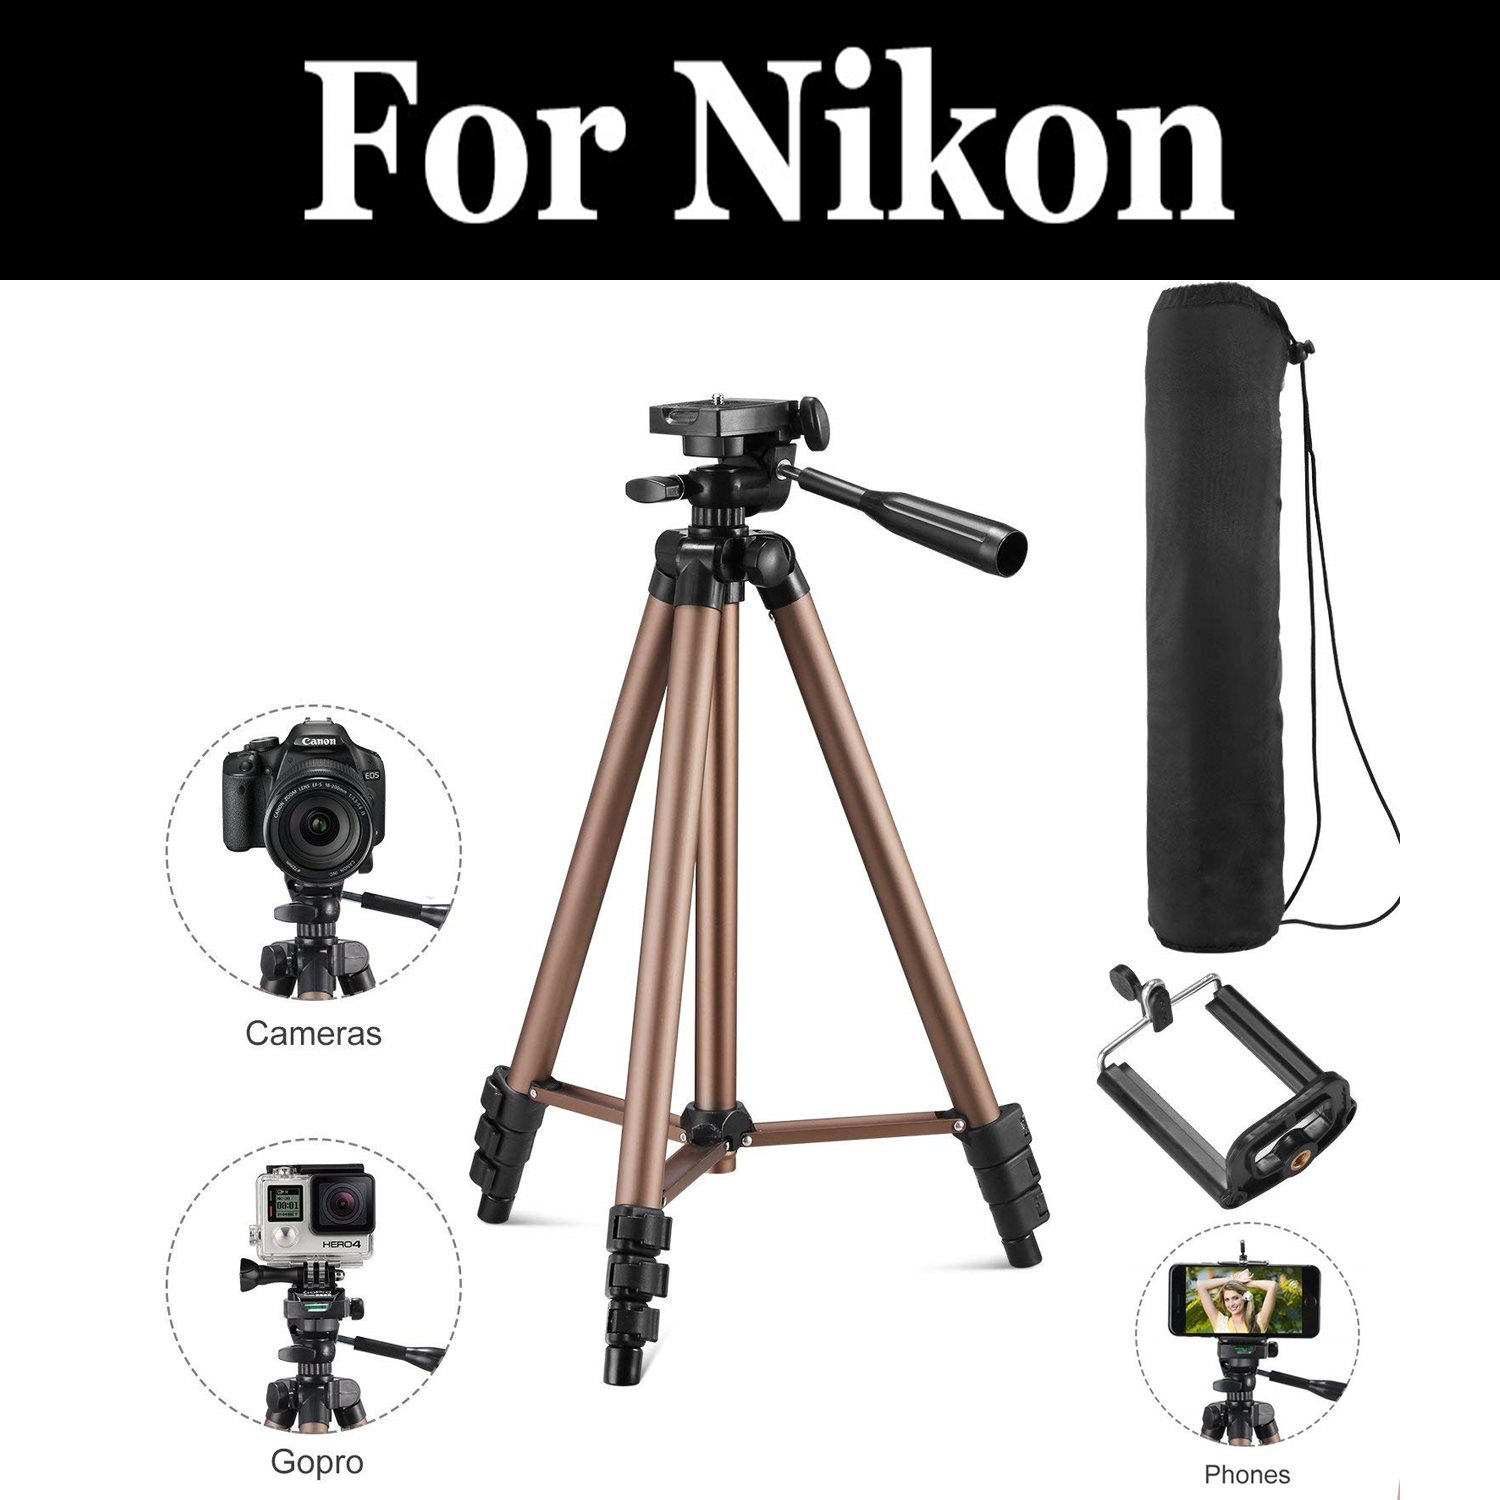 Nikon COOLPIX B500 Digital Camera Tripod Flexible Tripod Approx Height 13 inches for Digital Cameras and Camcorders